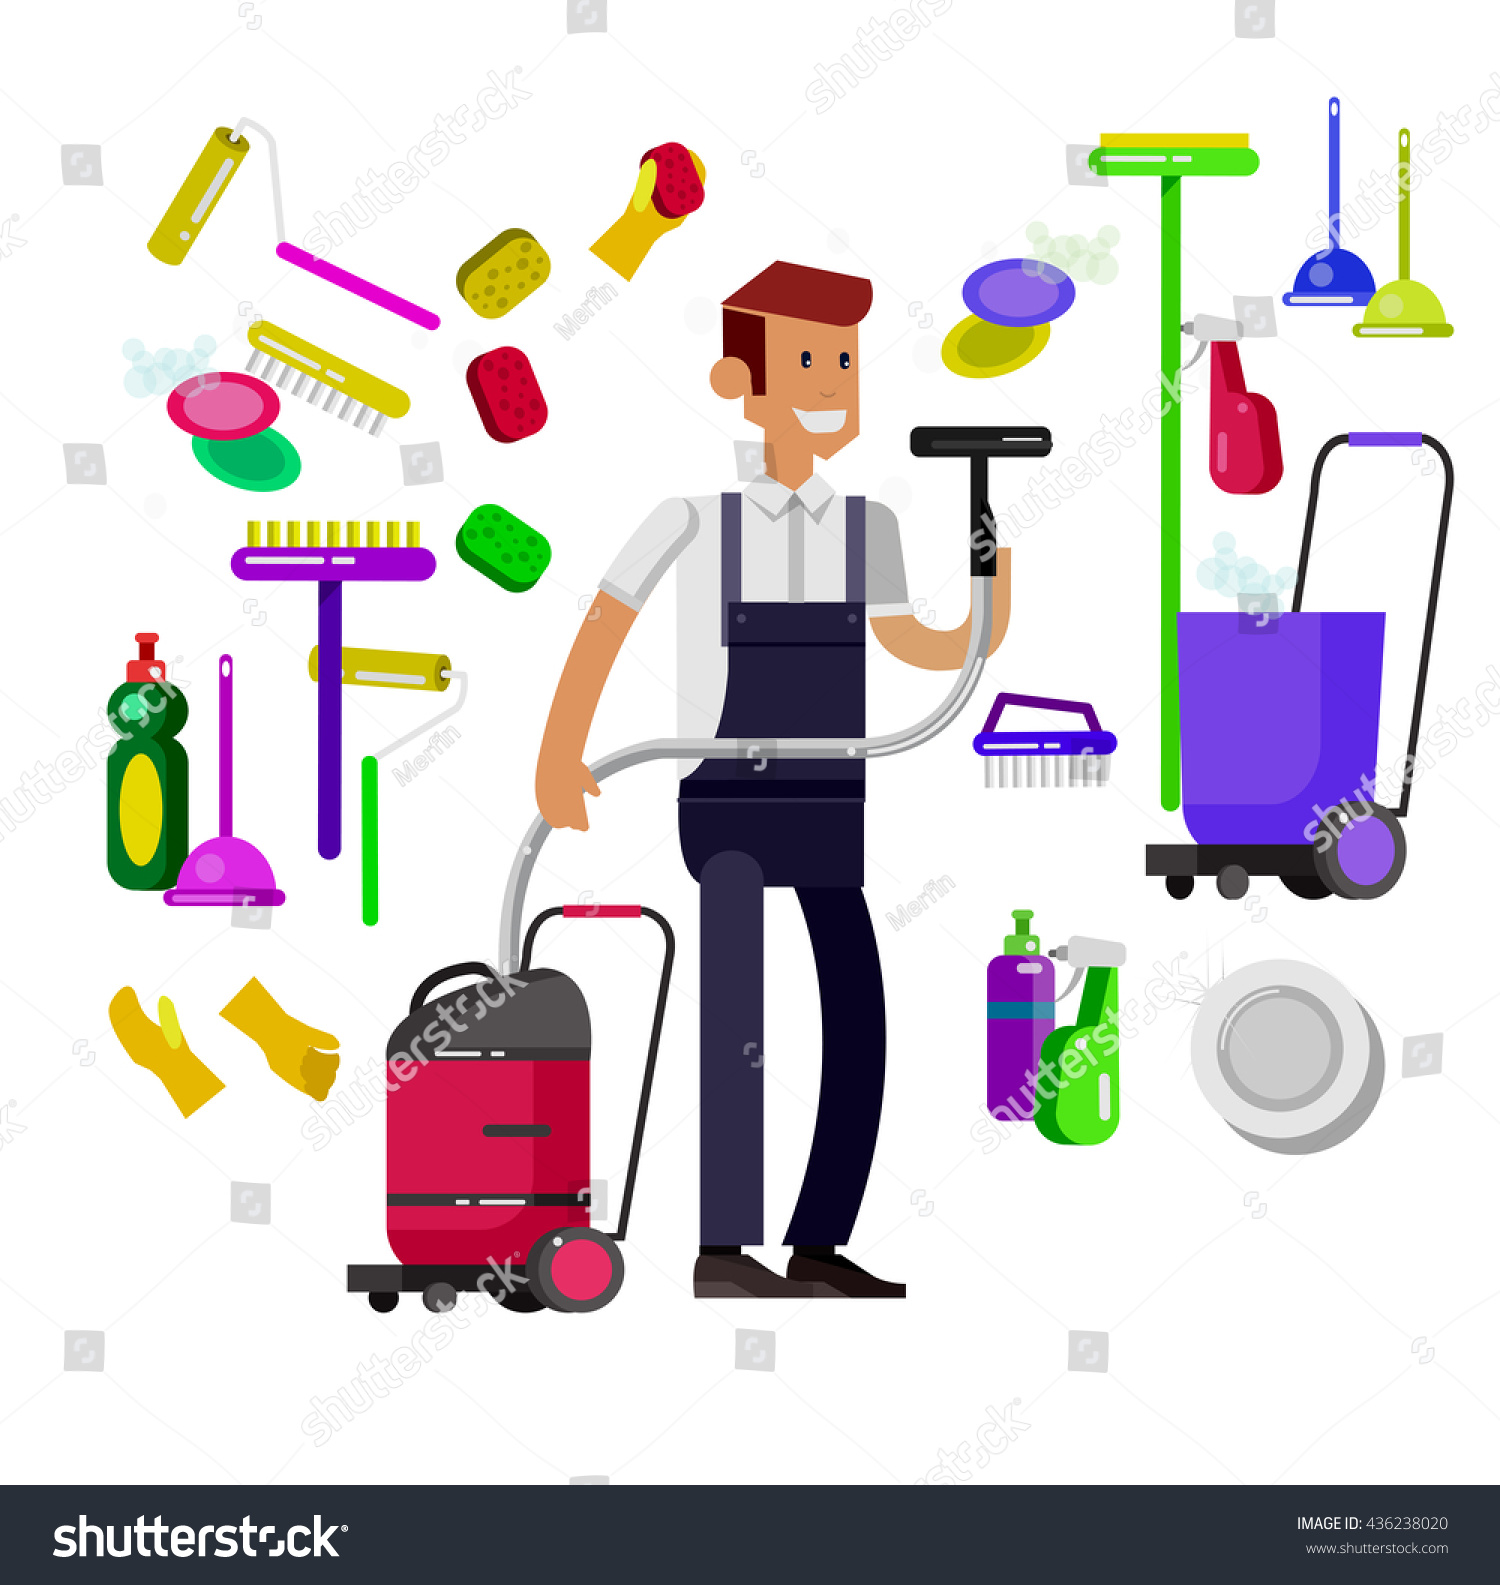 Poster design kit - Poster Design For Cleaning Service And Cleaning Supplies Vector Detailed Character Professional Housekeeper Kit